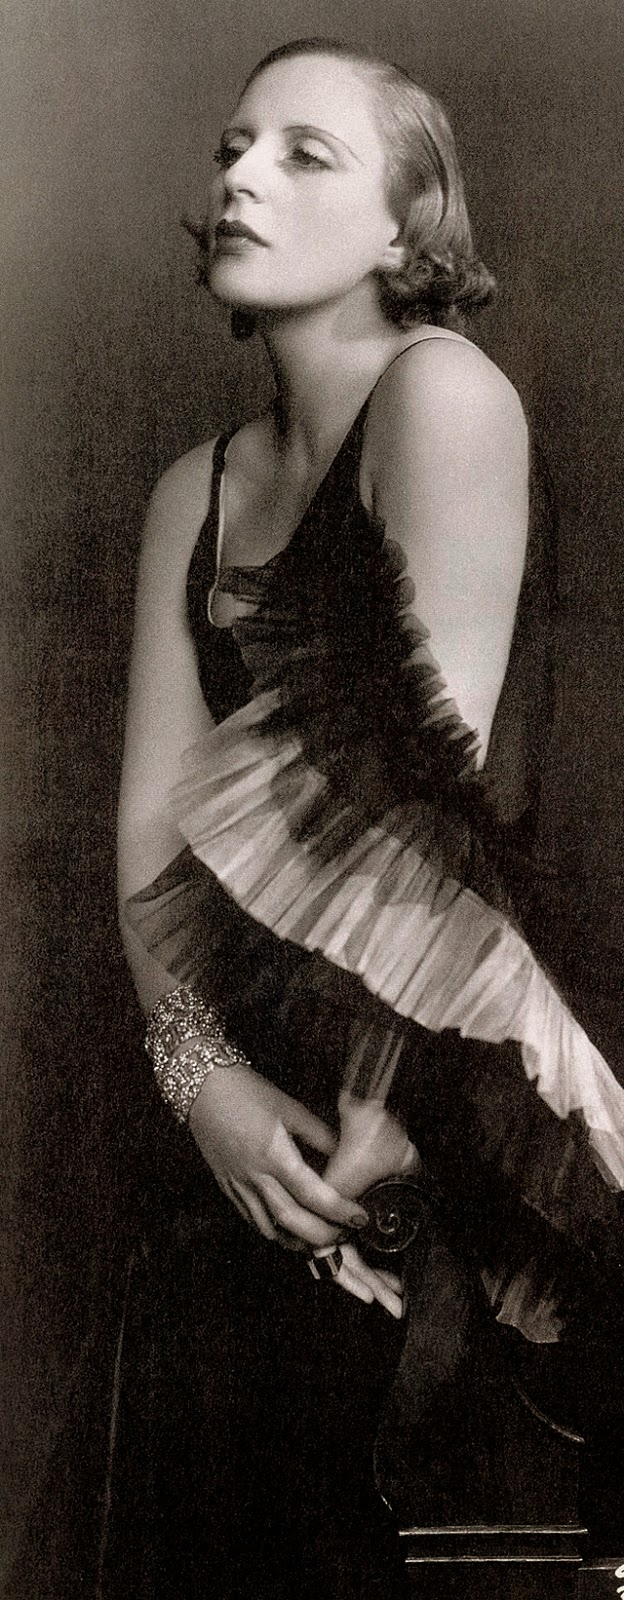 Street fashion, ca. 1920s (6)